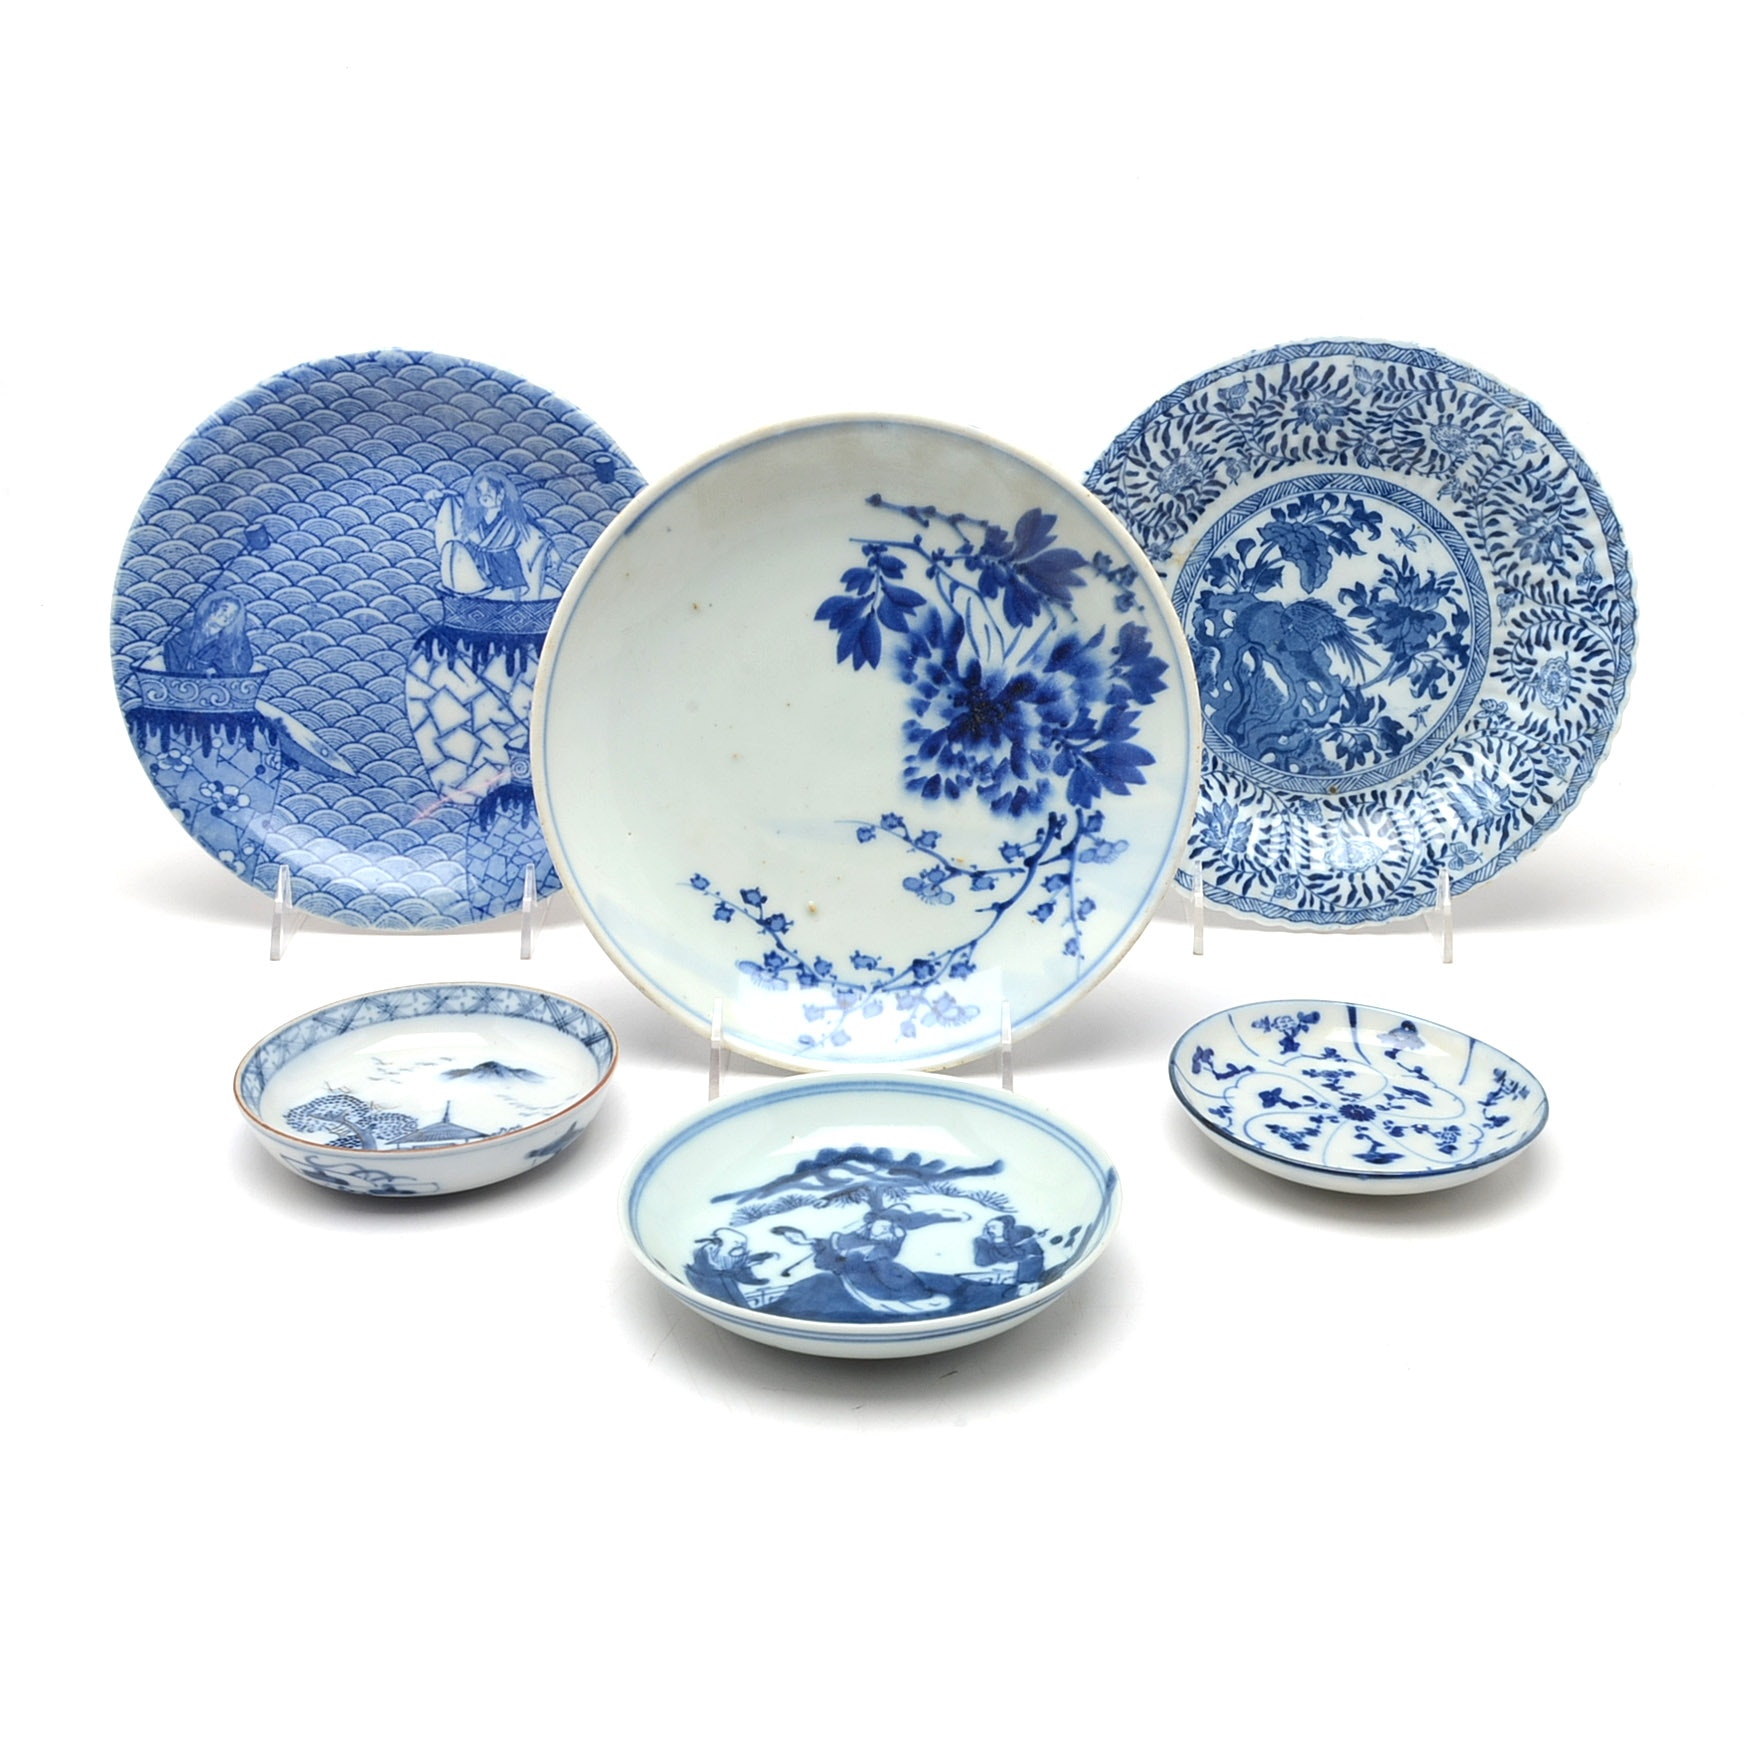 East Asian Blue and White Chinese Decorative Plates ...  sc 1 st  EBTH.com & East Asian Blue and White Chinese Decorative Plates : EBTH